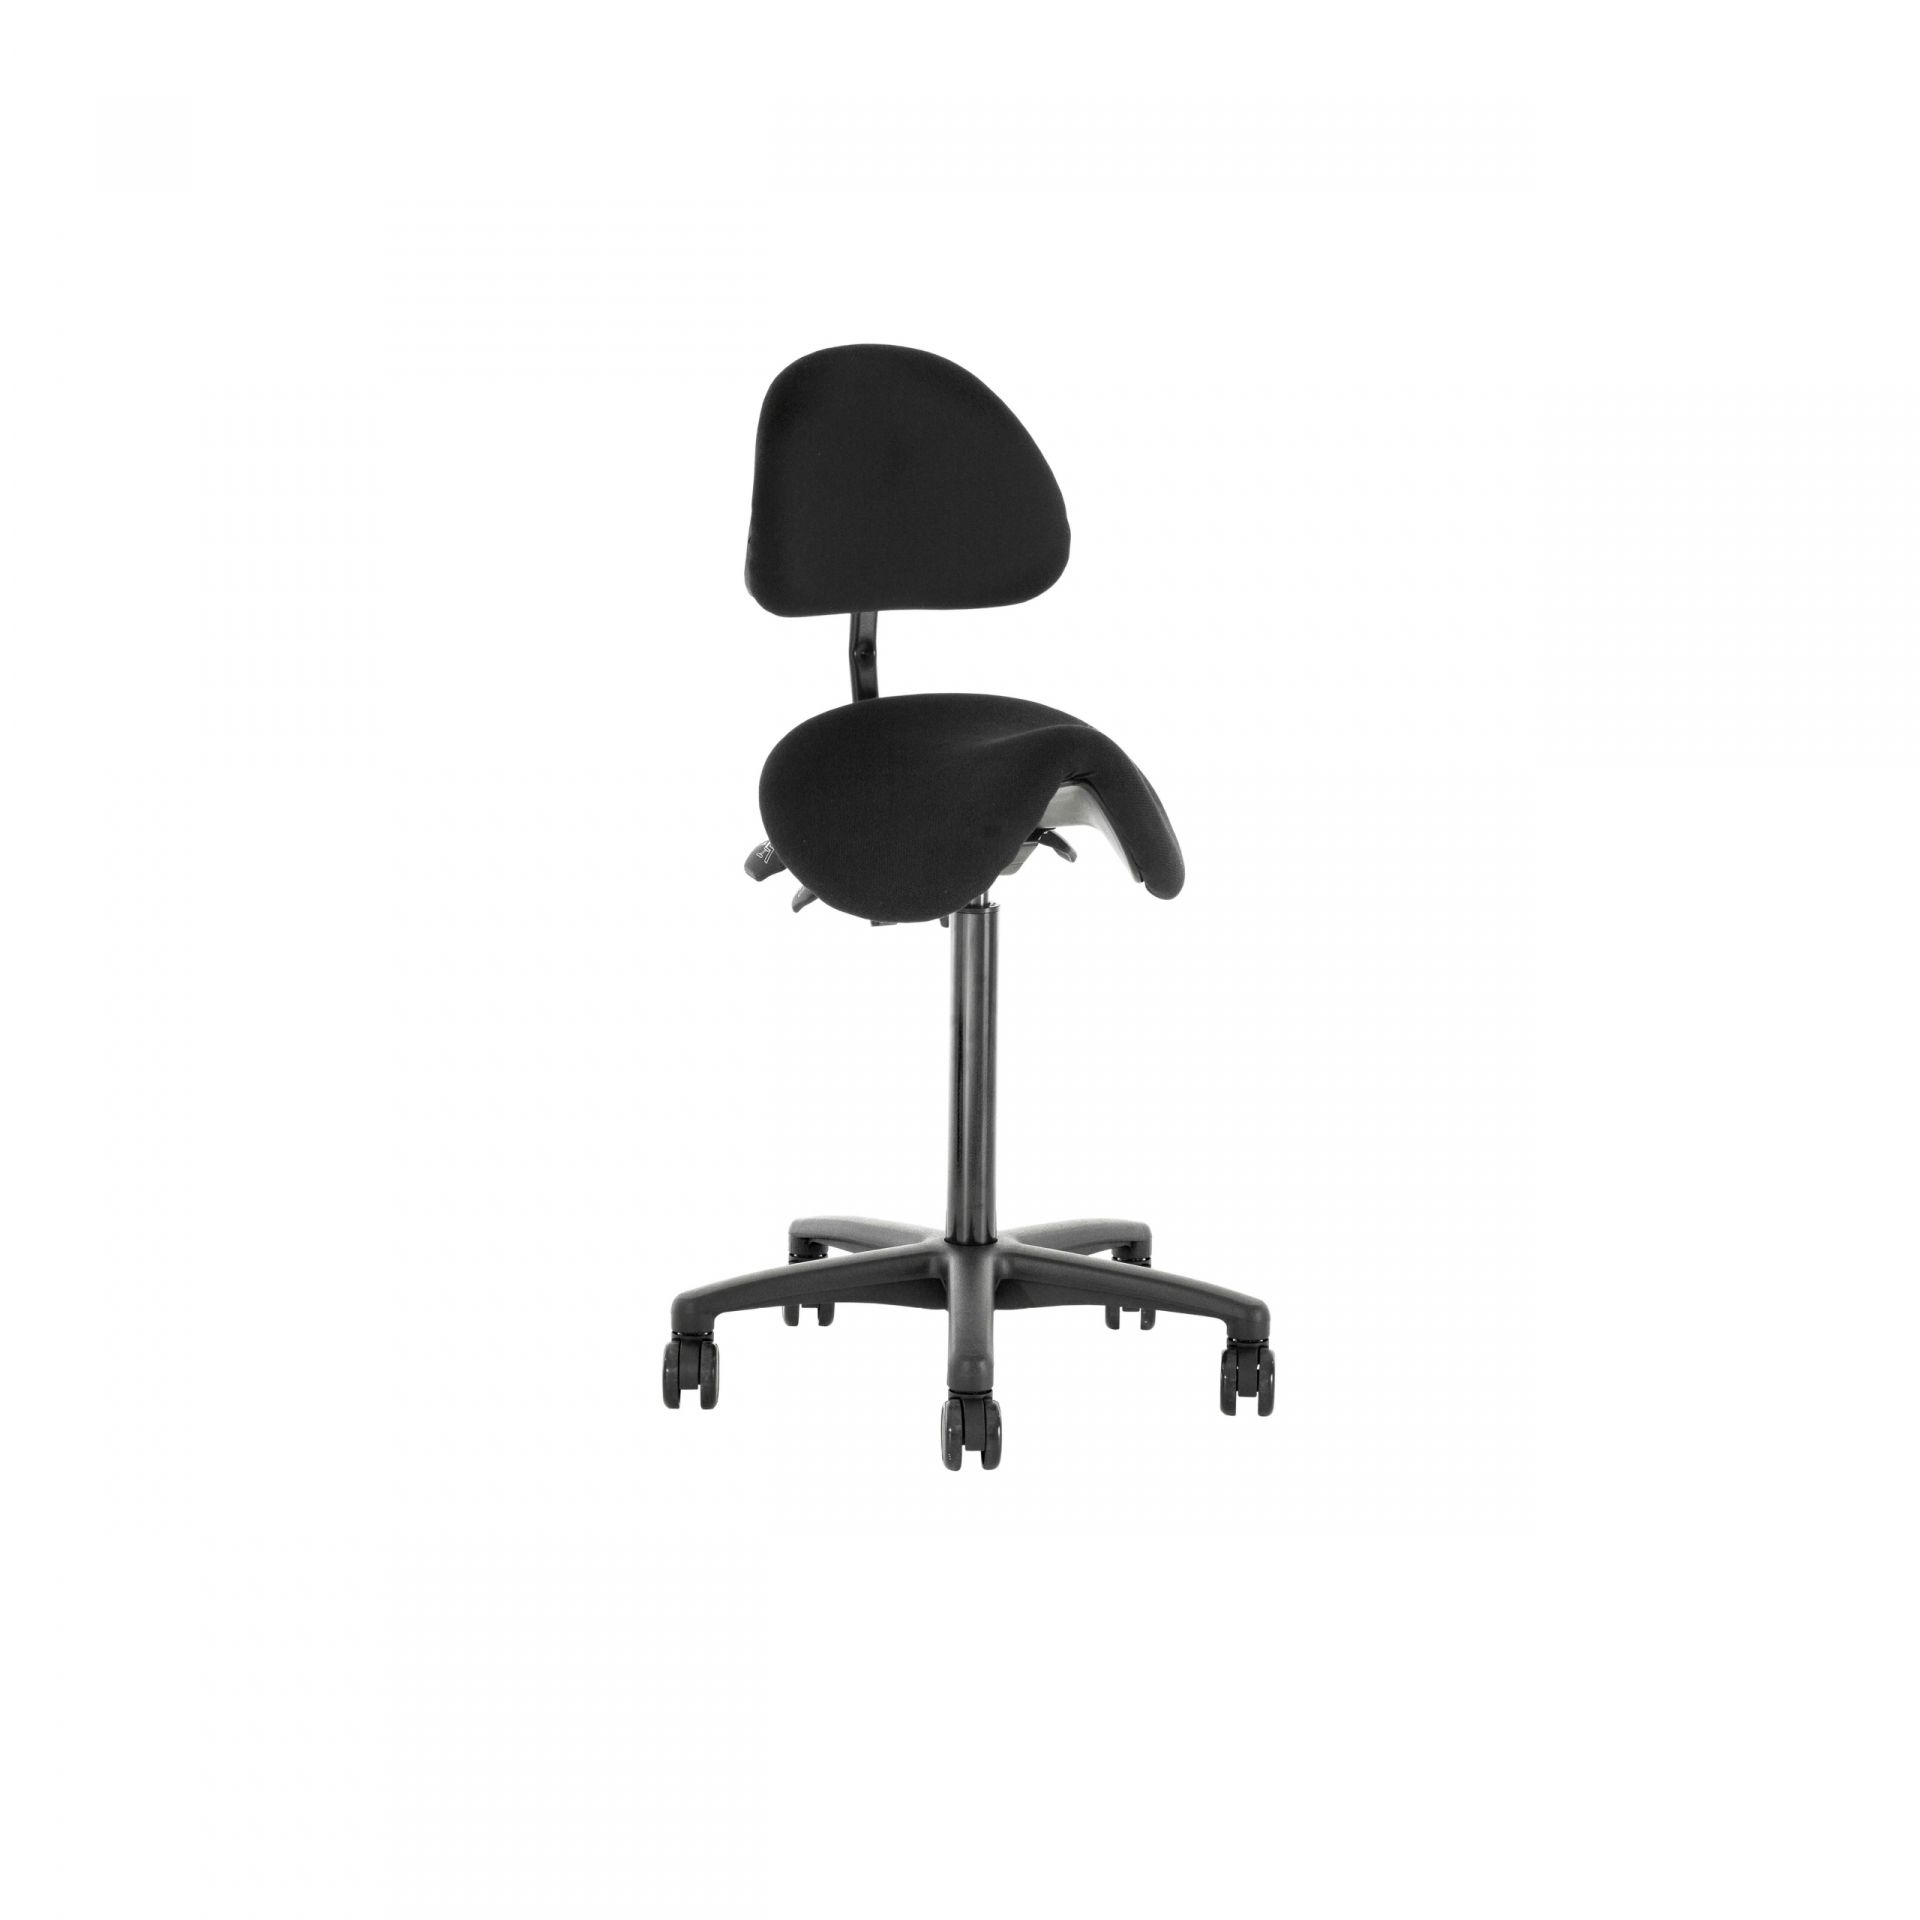 Saddle seat Office chair with saddle seat